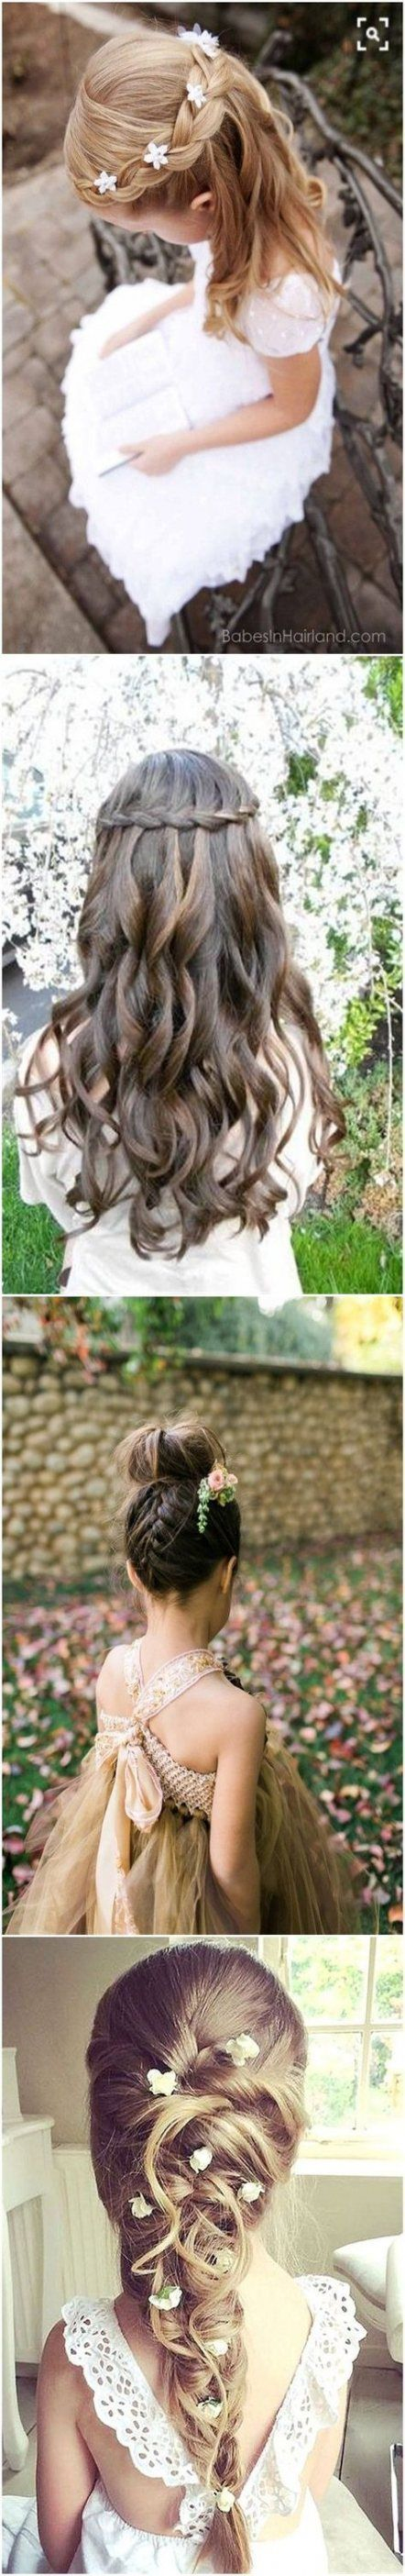 57 ideas for wedding hairstyles for kids life   – Weddings! – #Hairstyles #ideas…